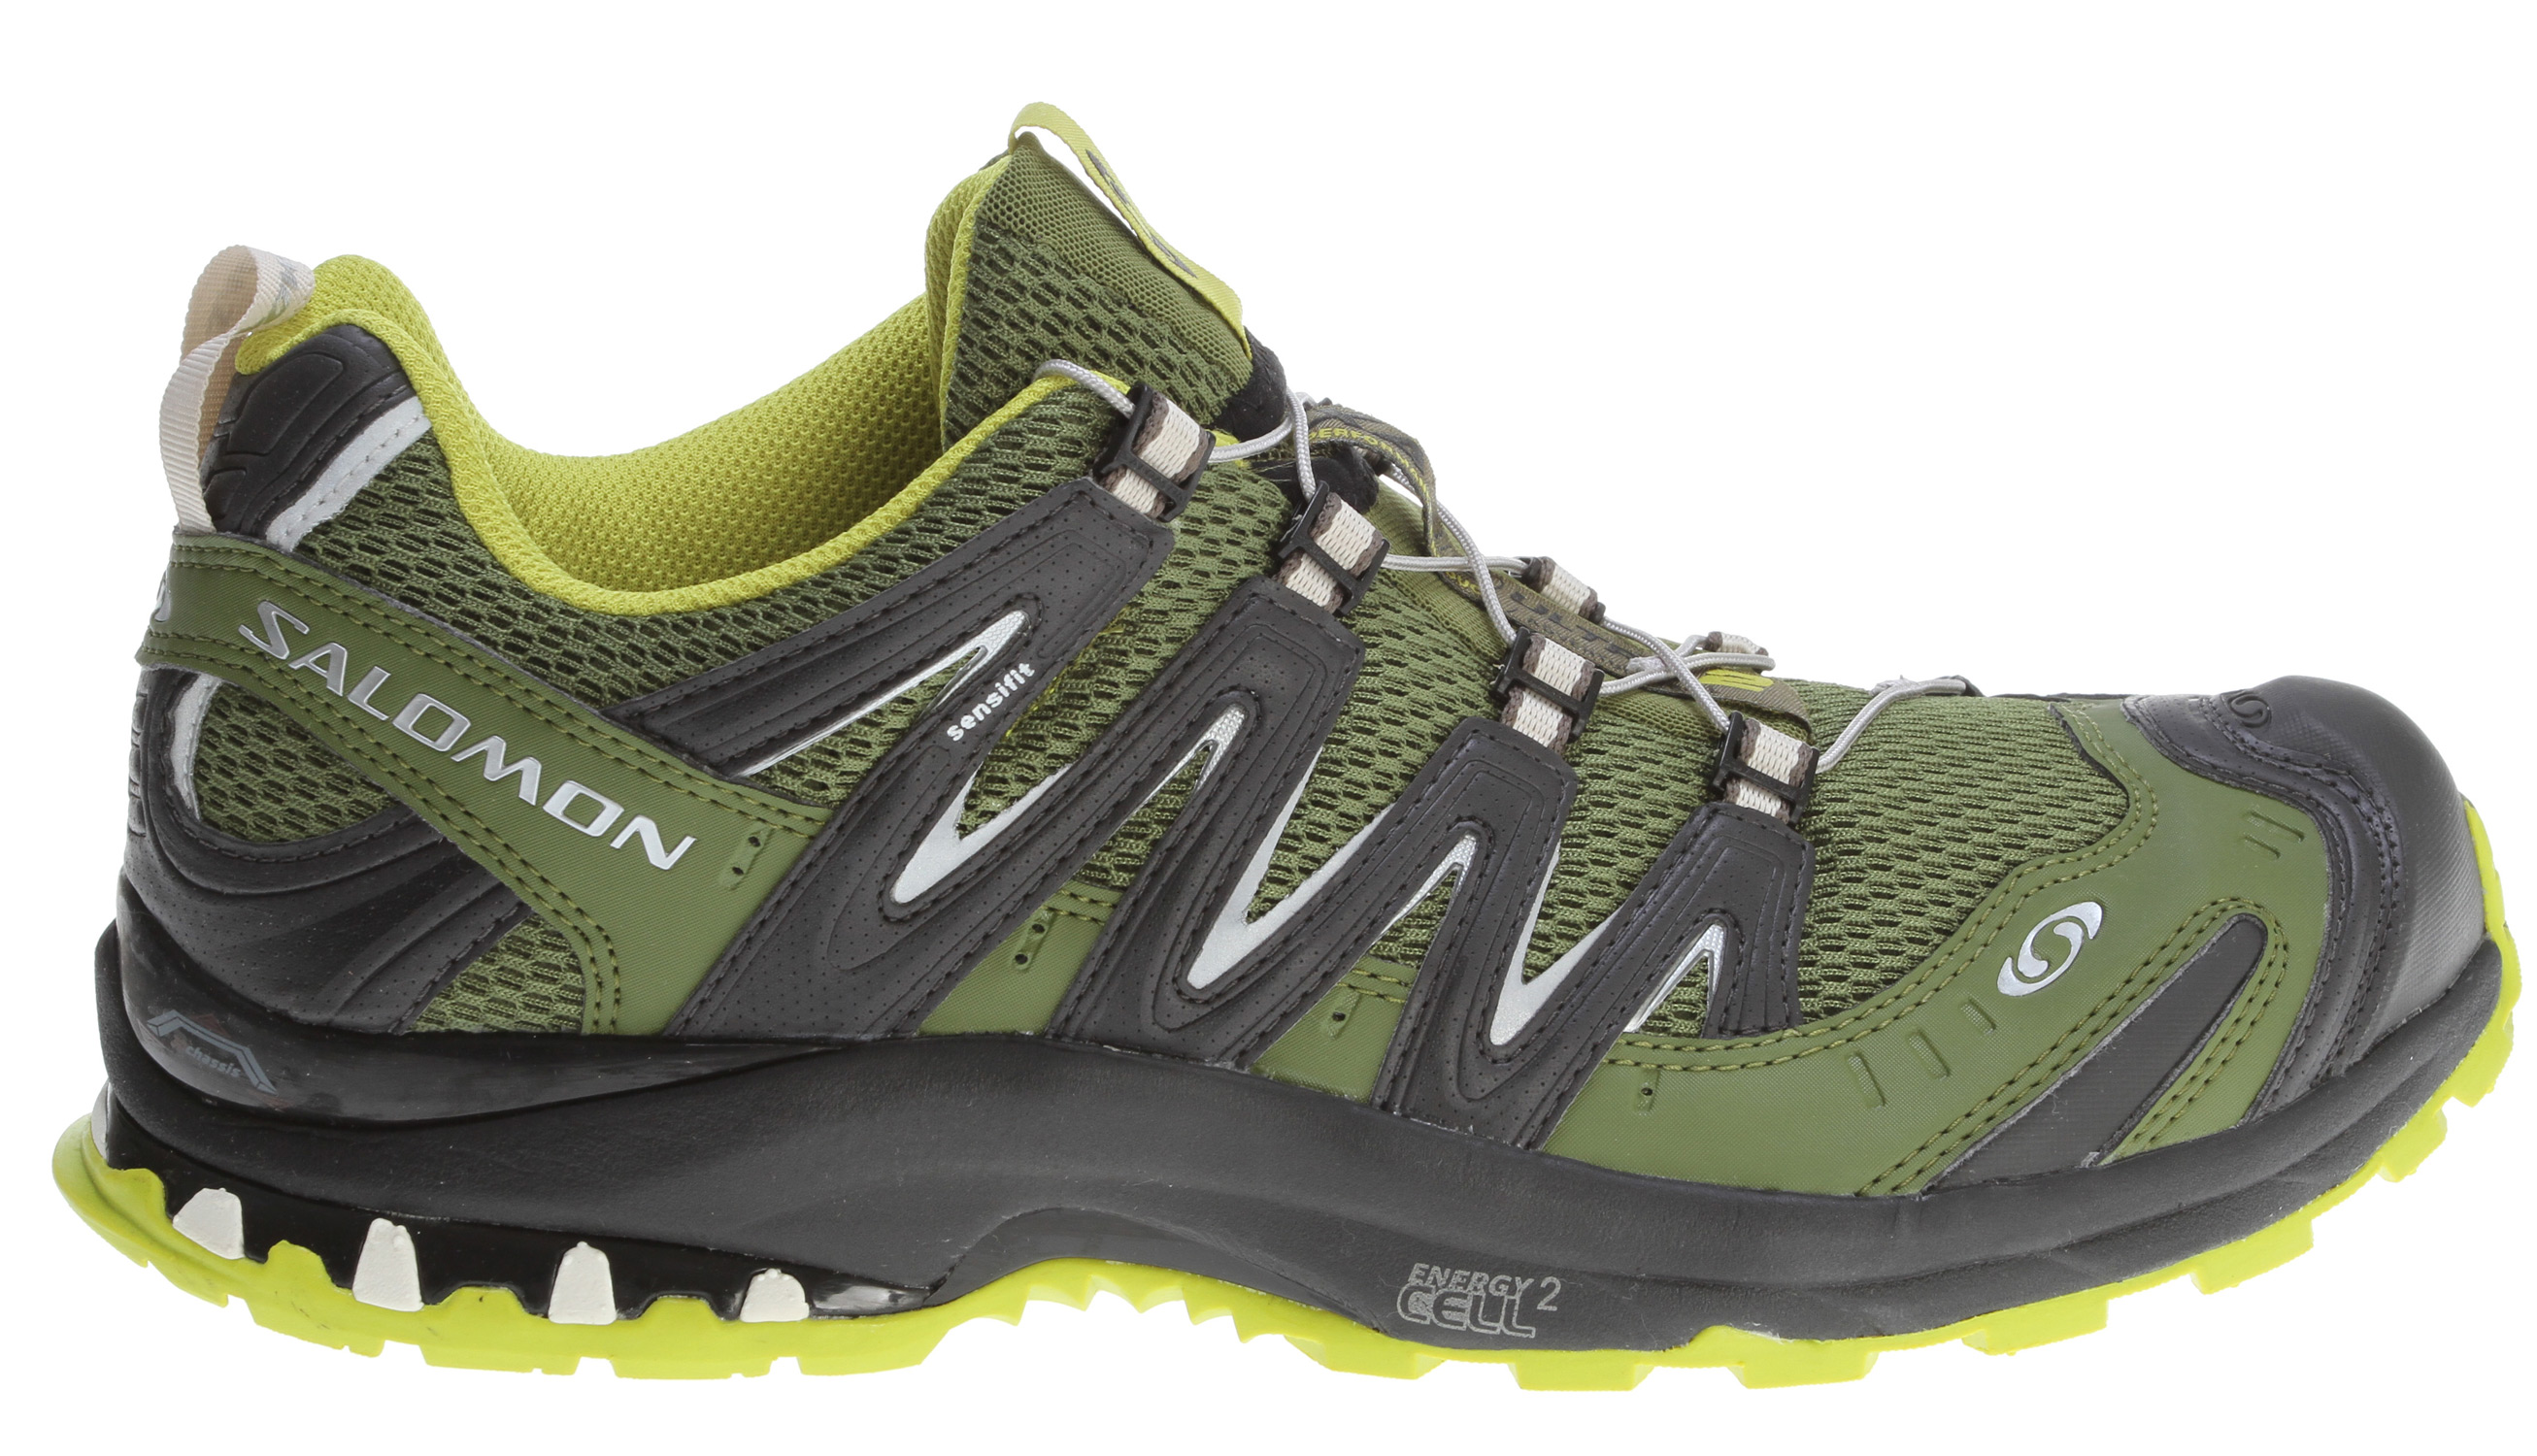 Camp and Hike Light, durable and stable on the most demanding trails, the XA Pro 3D Ultra 2 has a streamlined profile, improved durability and aggressive lugged outsole geometry.Key Features of the Salomon XA Pro 3D Ultra 2 Hiking Shoes: Weight: 13.8oz Quick drying breathable mesh Lace pocket Sensifit Asymmetrical lacing Protective rubber toe cap Mud Guard Quicklace Optimized fit for women Non marking running Contagrip 3D Advanced Chassis Molded EVA sockliner EVA shaped footbed Ortholite Molded EVA midsole Energy Cell 2 midsole Pronation control Midsole height: 11mm/21mm - $90.95